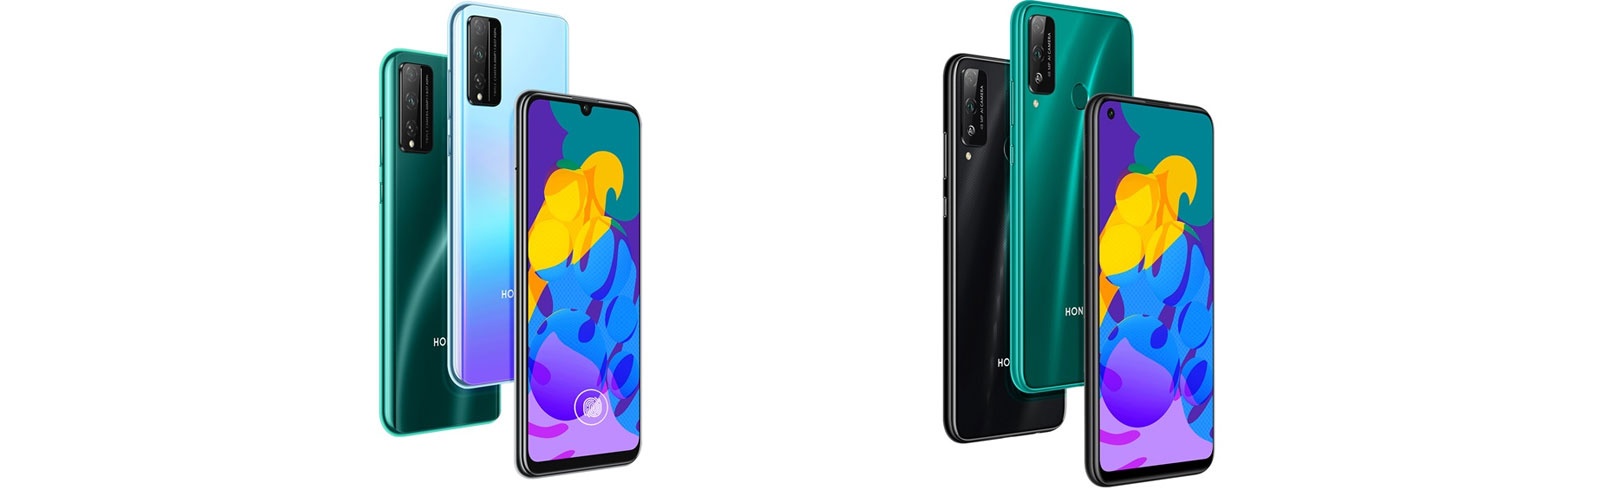 Huawei releases the Honor Play 4T Pro and Honor Play 4T in China